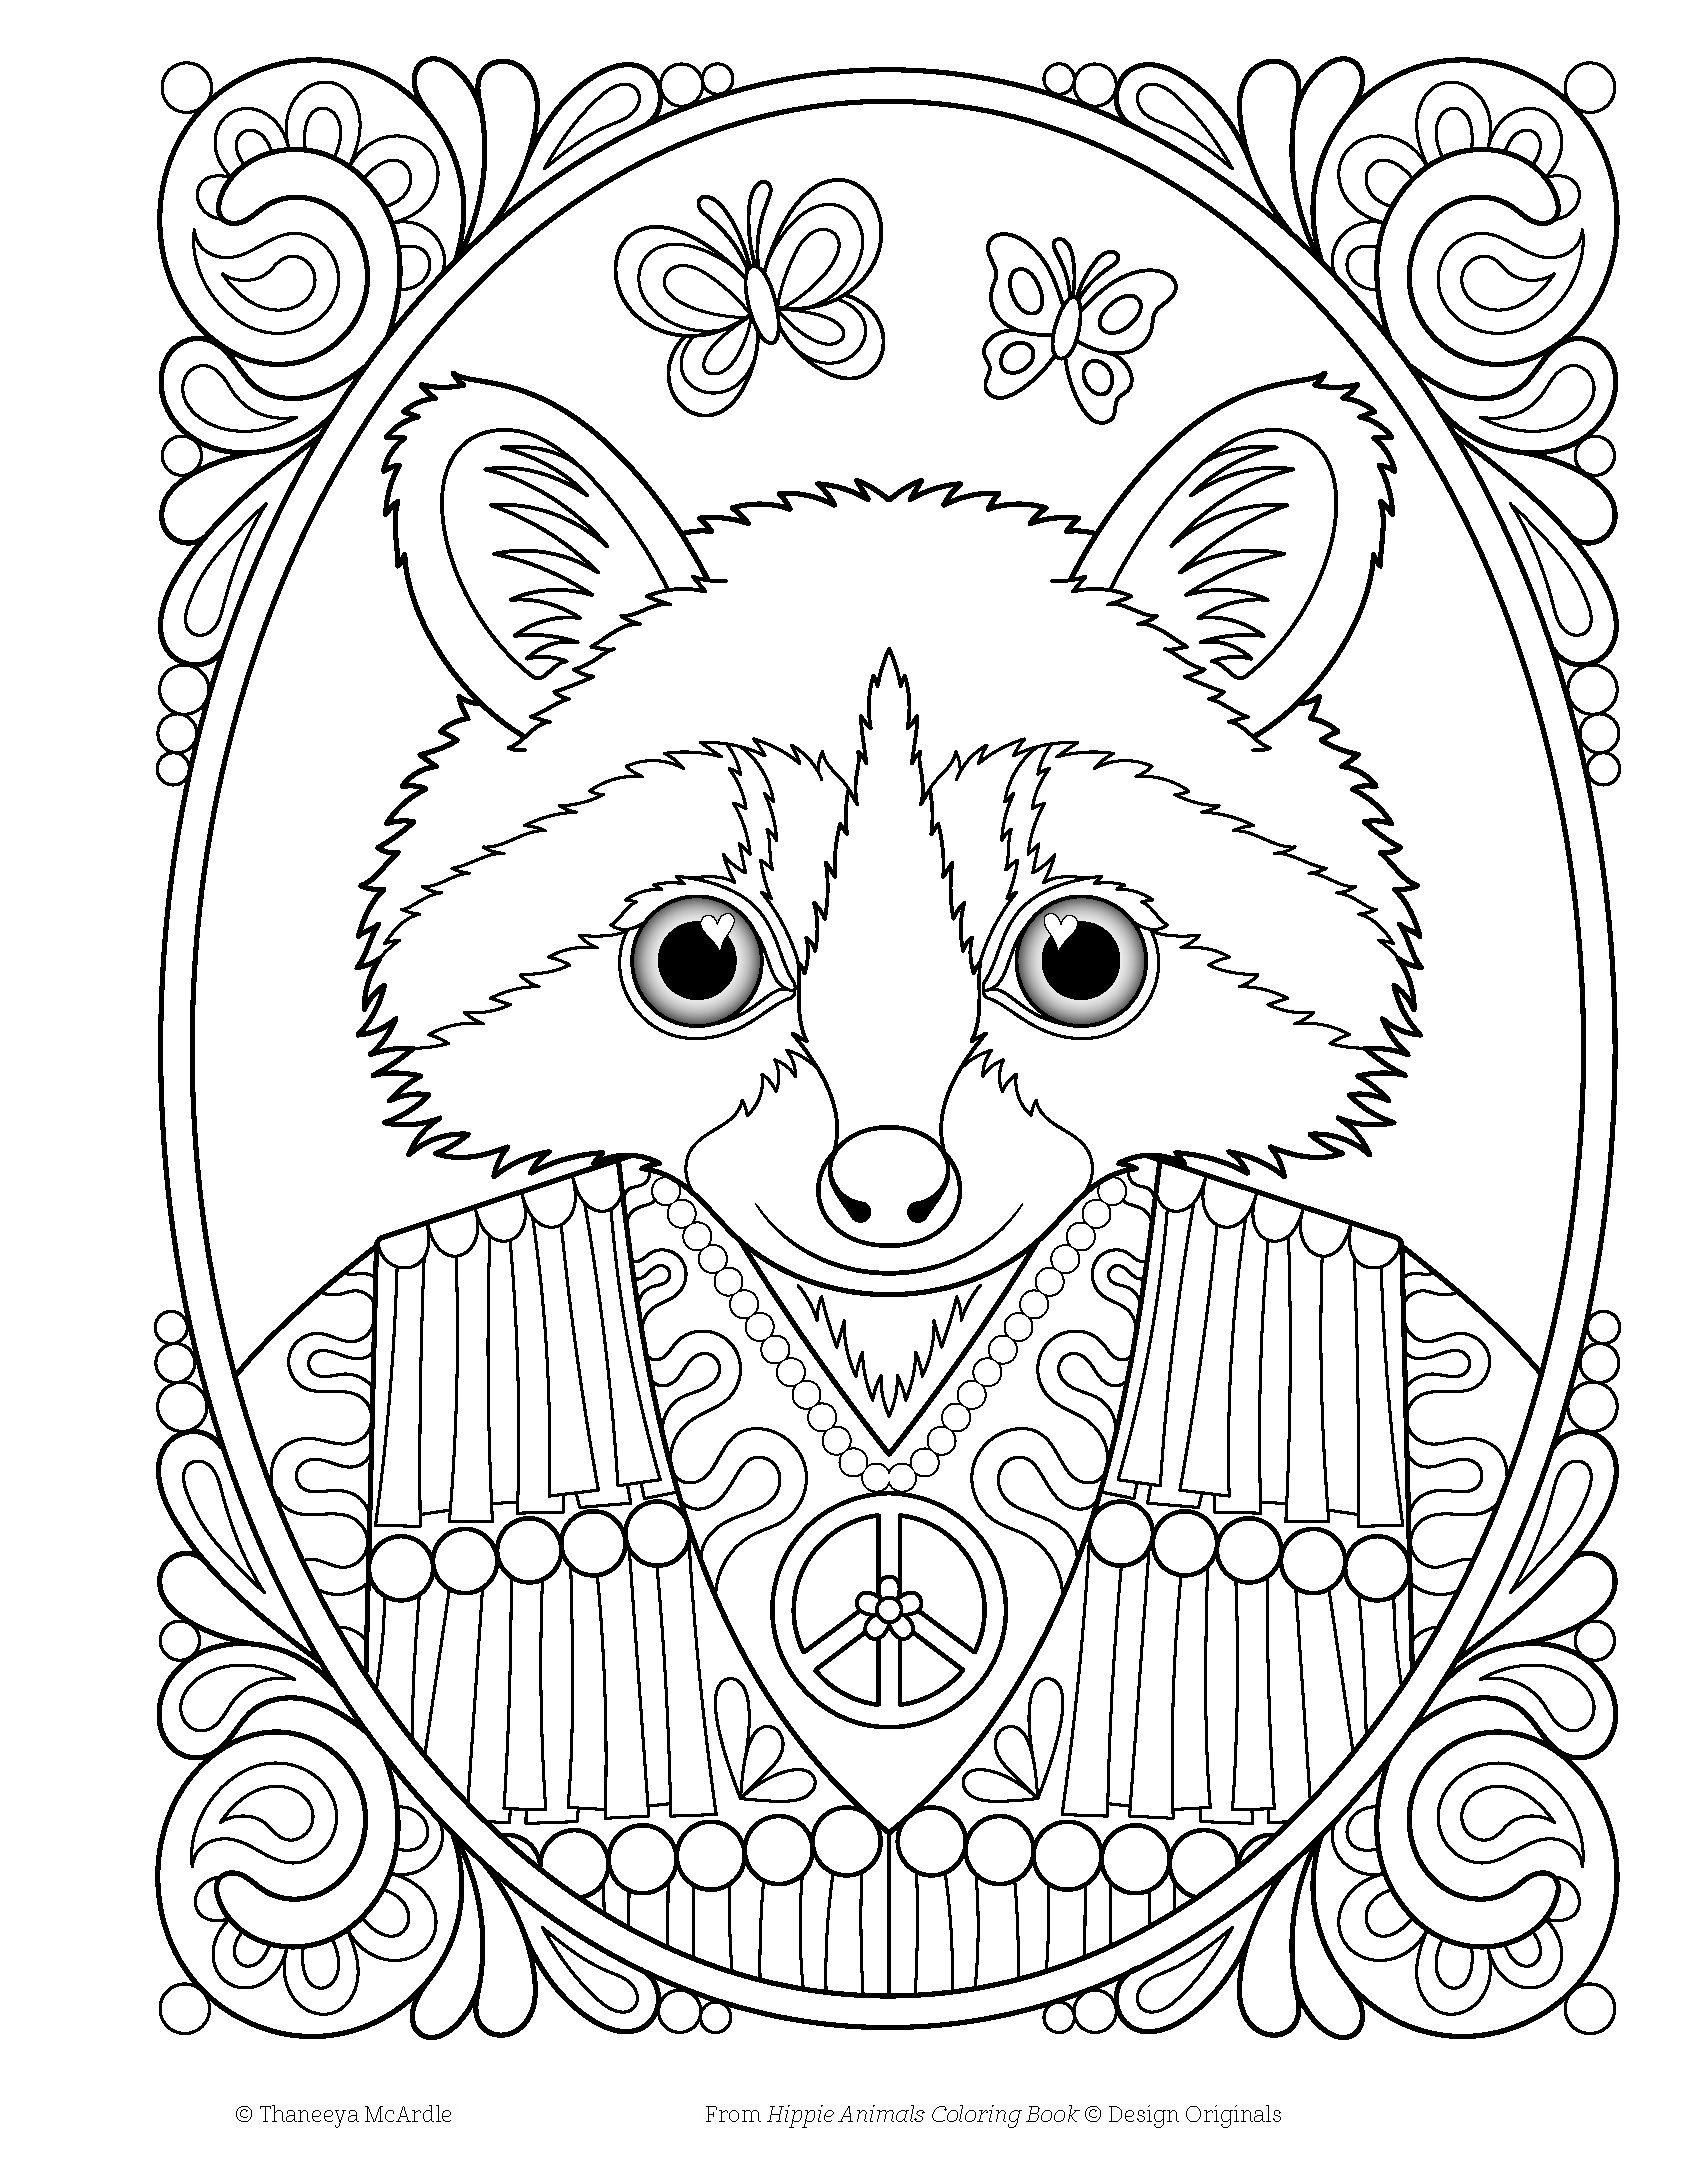 Hippie Animals Coloring Book Amazonca Thaneeya McArdle Books